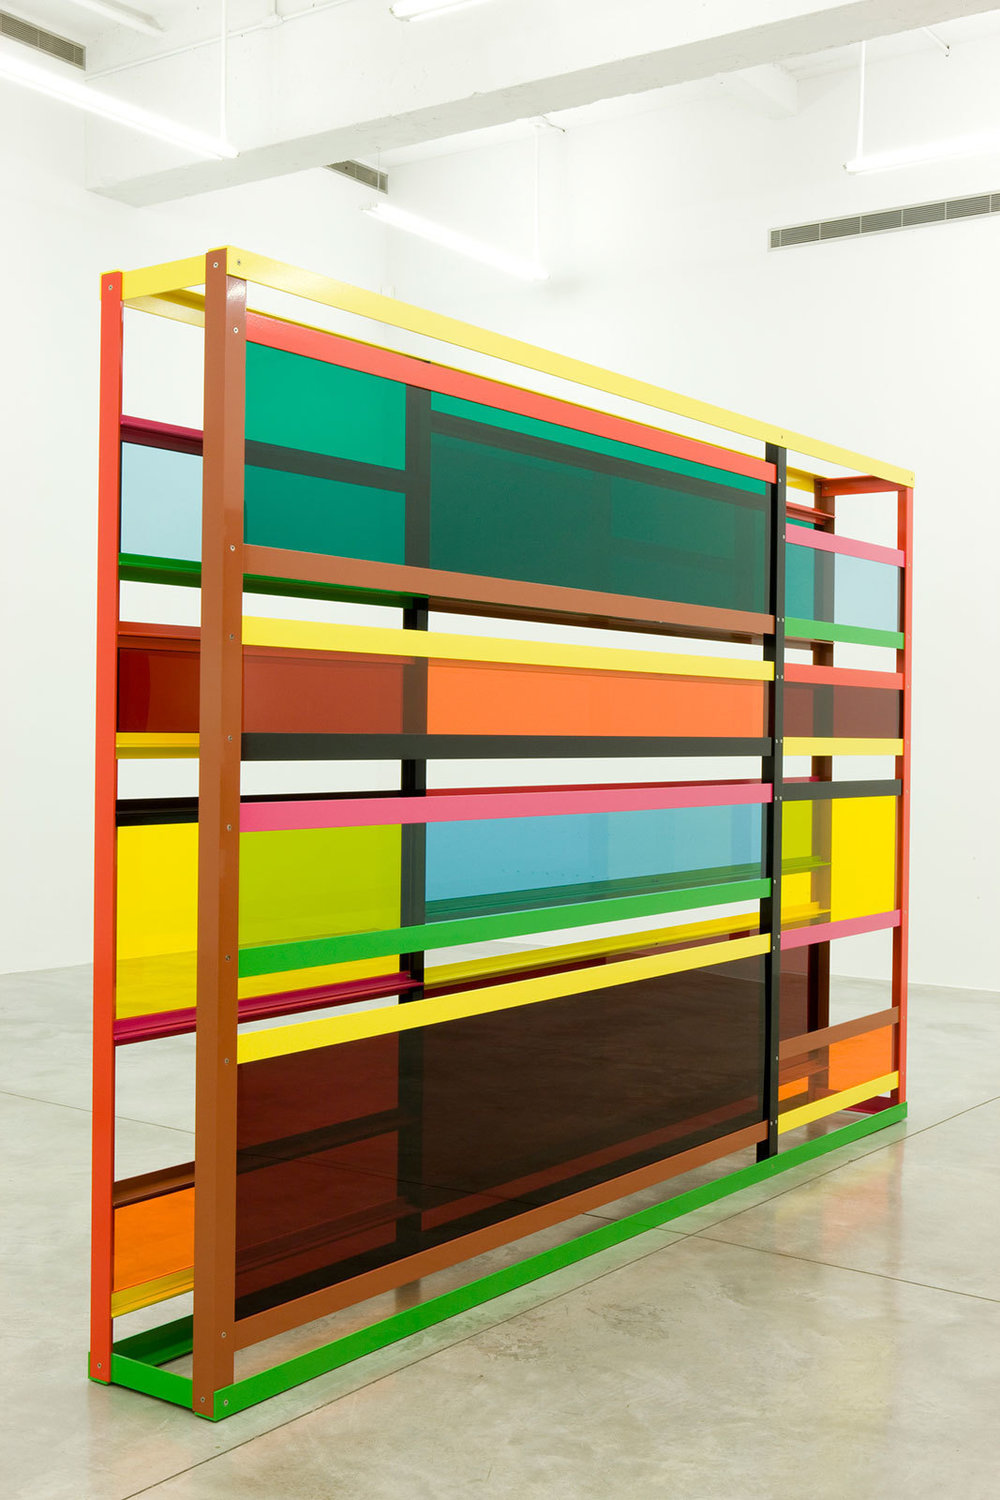 Maureen-Paley-Liam-Gillick-Artwork-Status-following-Closure-2008.jpg